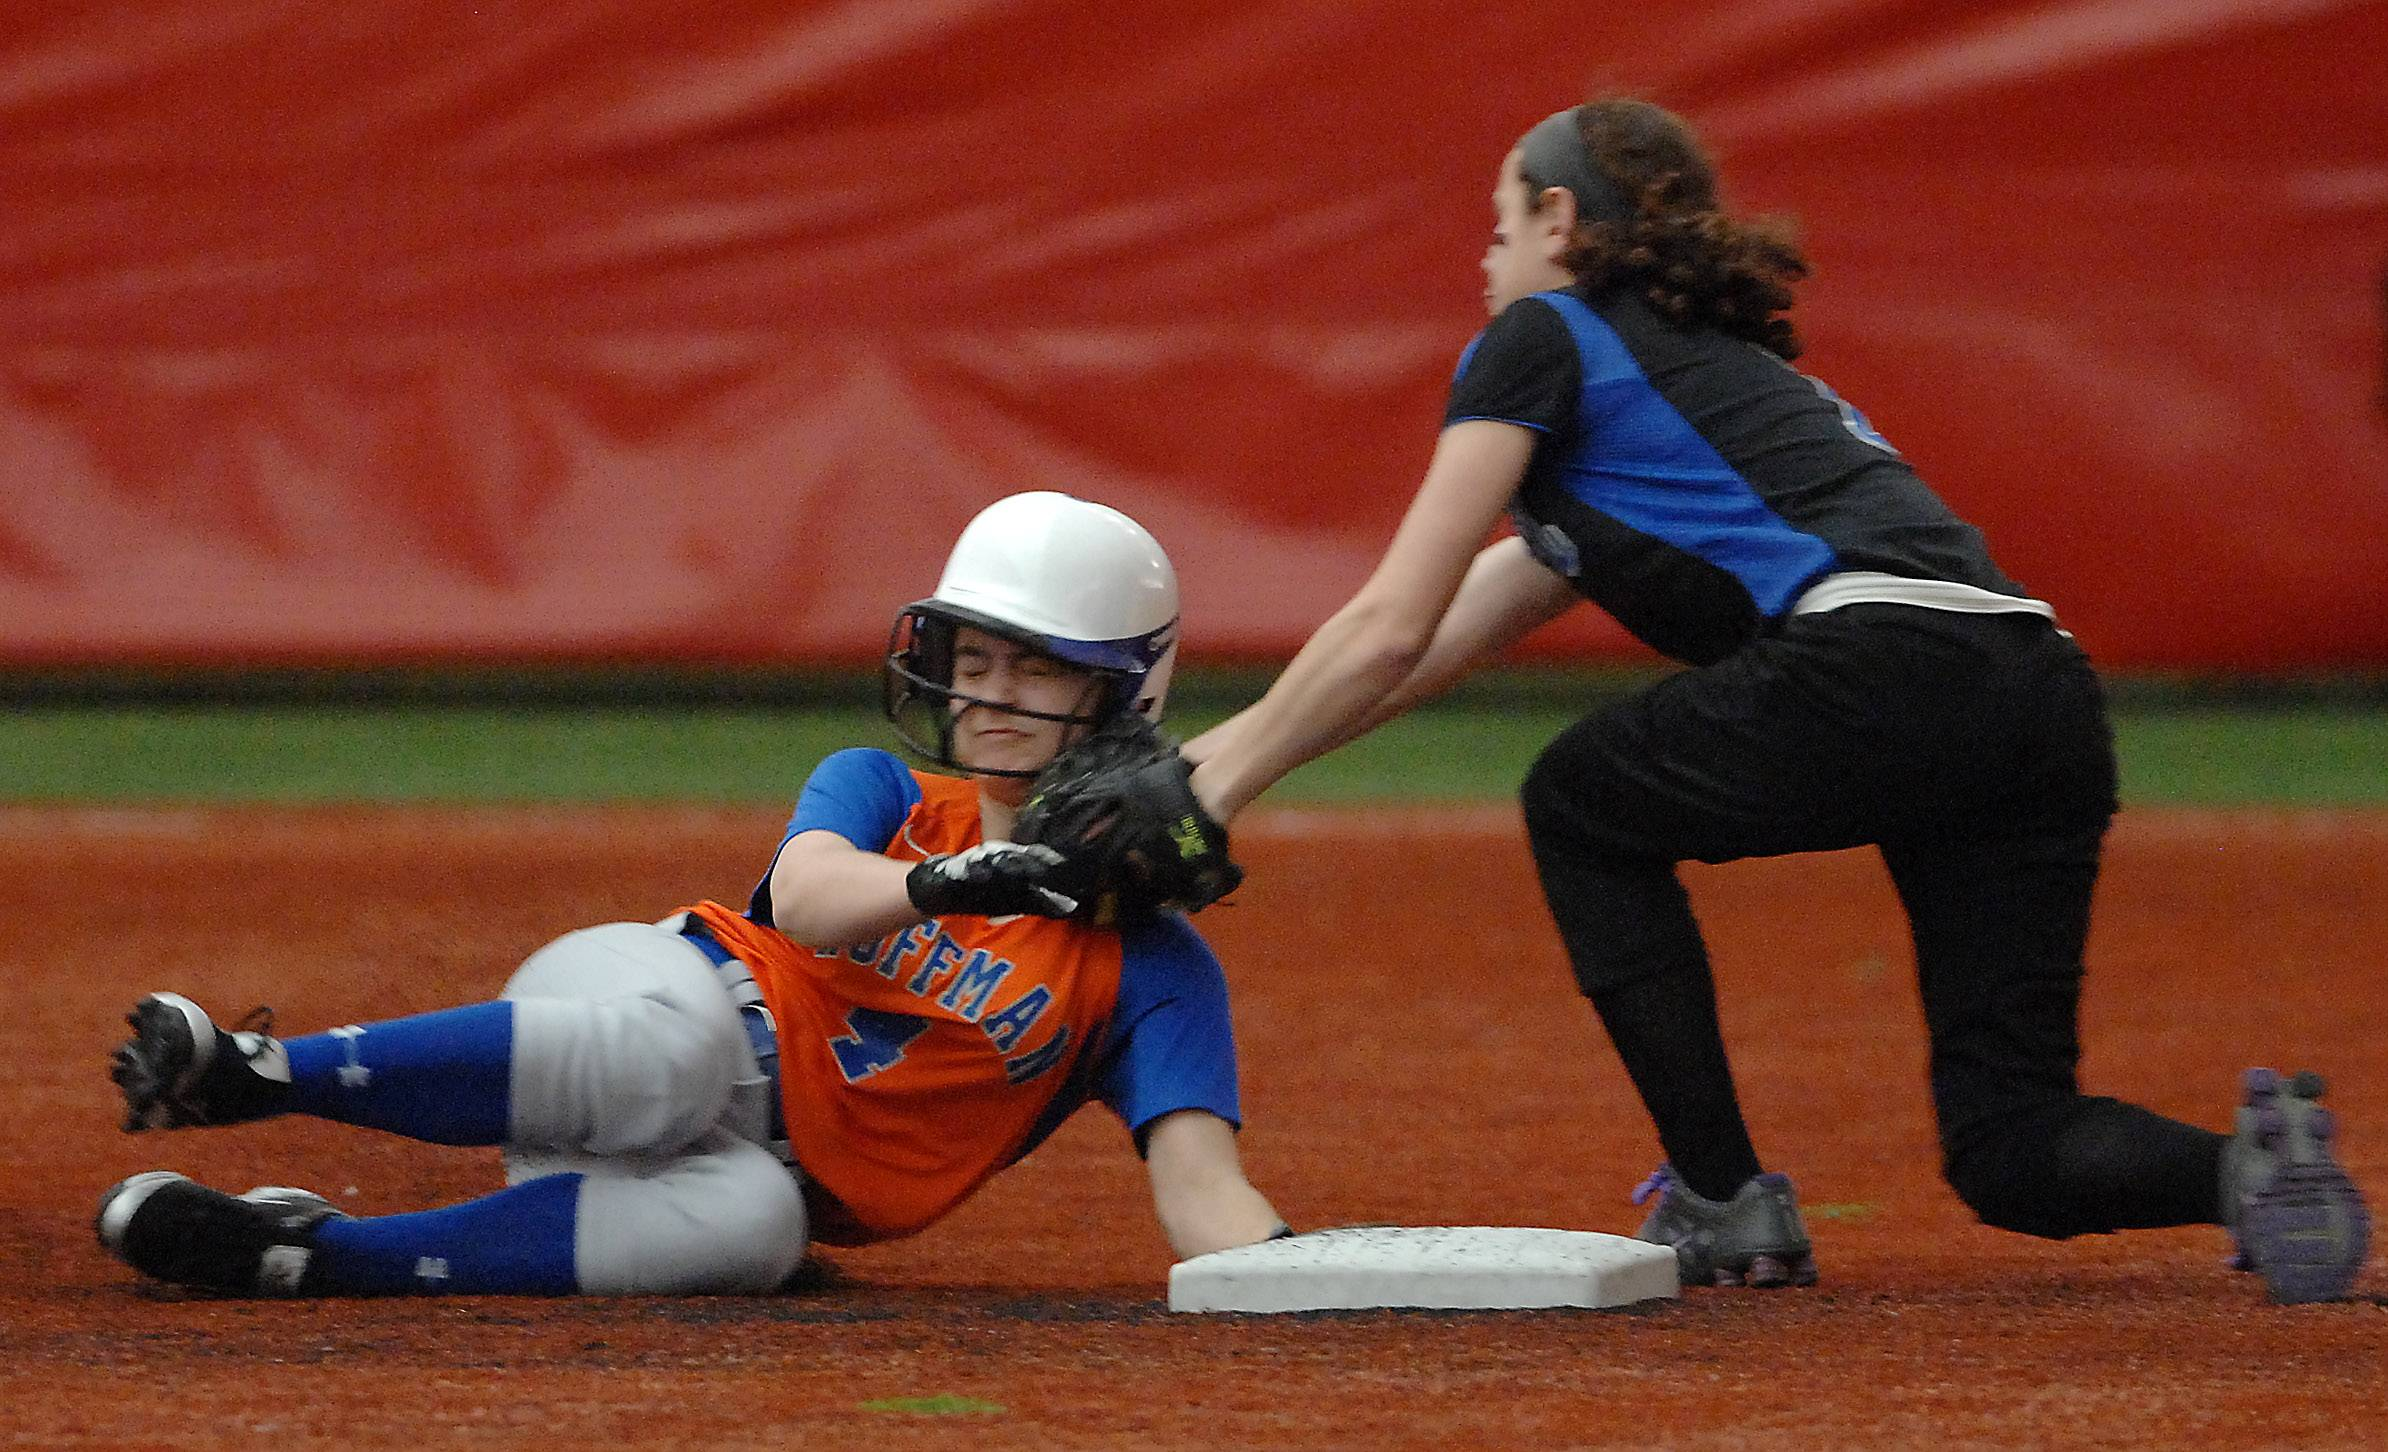 Brynn Connelly of Hoffman Estates slides safely in under the tag of Lake Zurich's Maddie Minneci during softball action Tuesday in Rosemont.